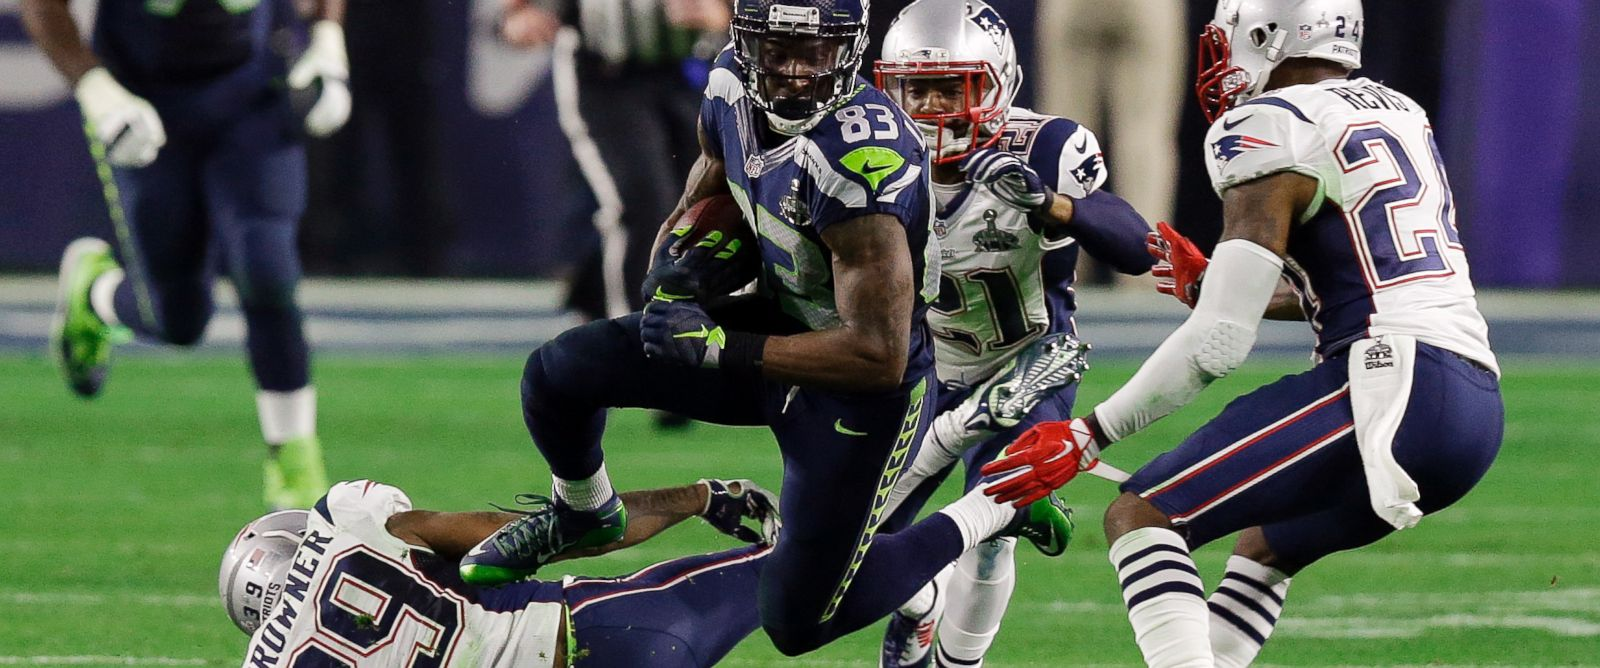 PHOTO: Seattle Seahawks wide receiver Ricardo Lockette leaps over New England Patriots wide receiver Greg Orton during the second half of NFL Super Bowl XLIX football game, Feb. 1, 2015, in Glendale, Ariz.